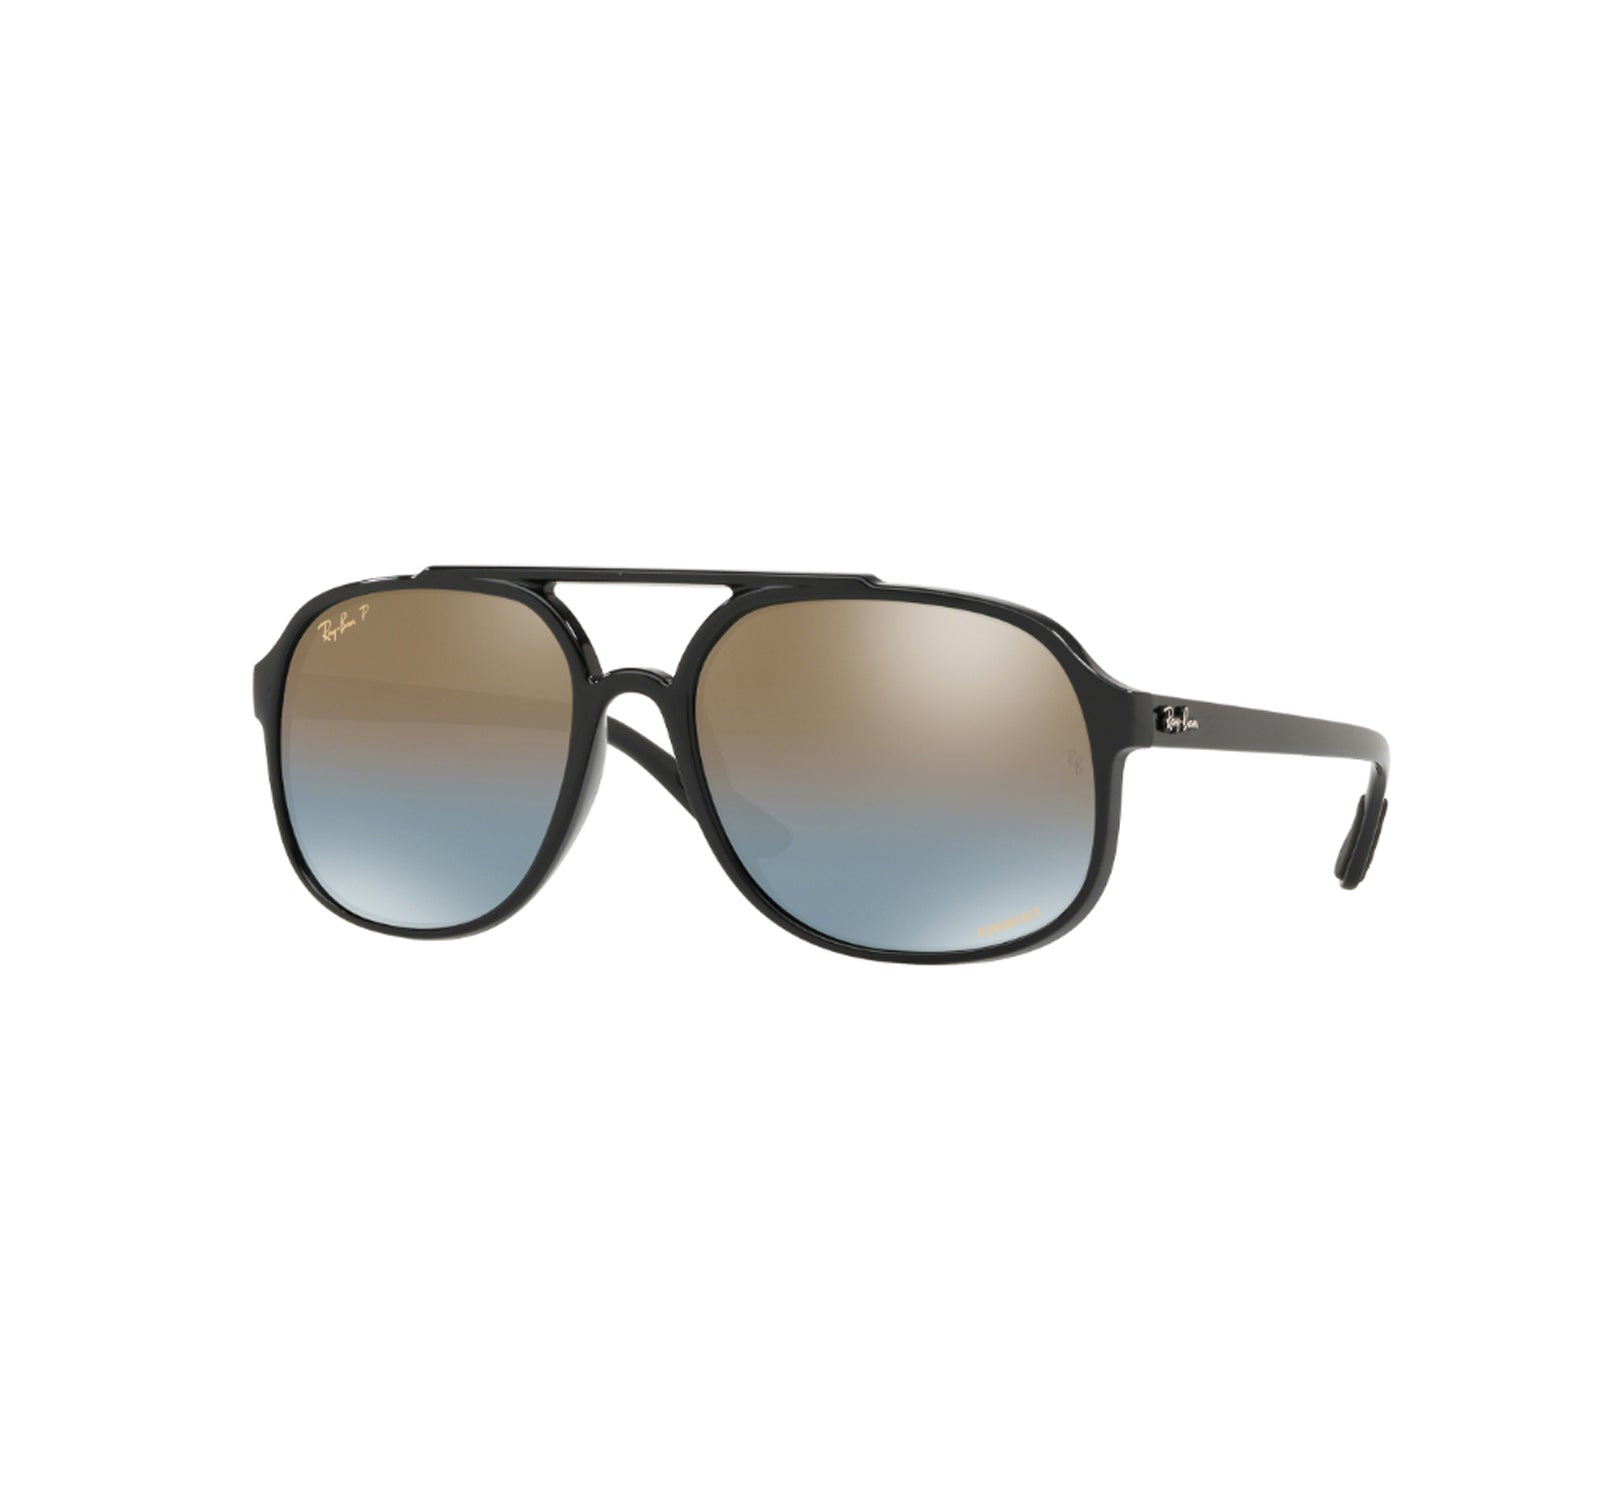 14b0f09ecd Ray-Ban 4312 Men s Sunglasses - Black Frame Blue Mirror Gold Gradient -  Surf Station Store